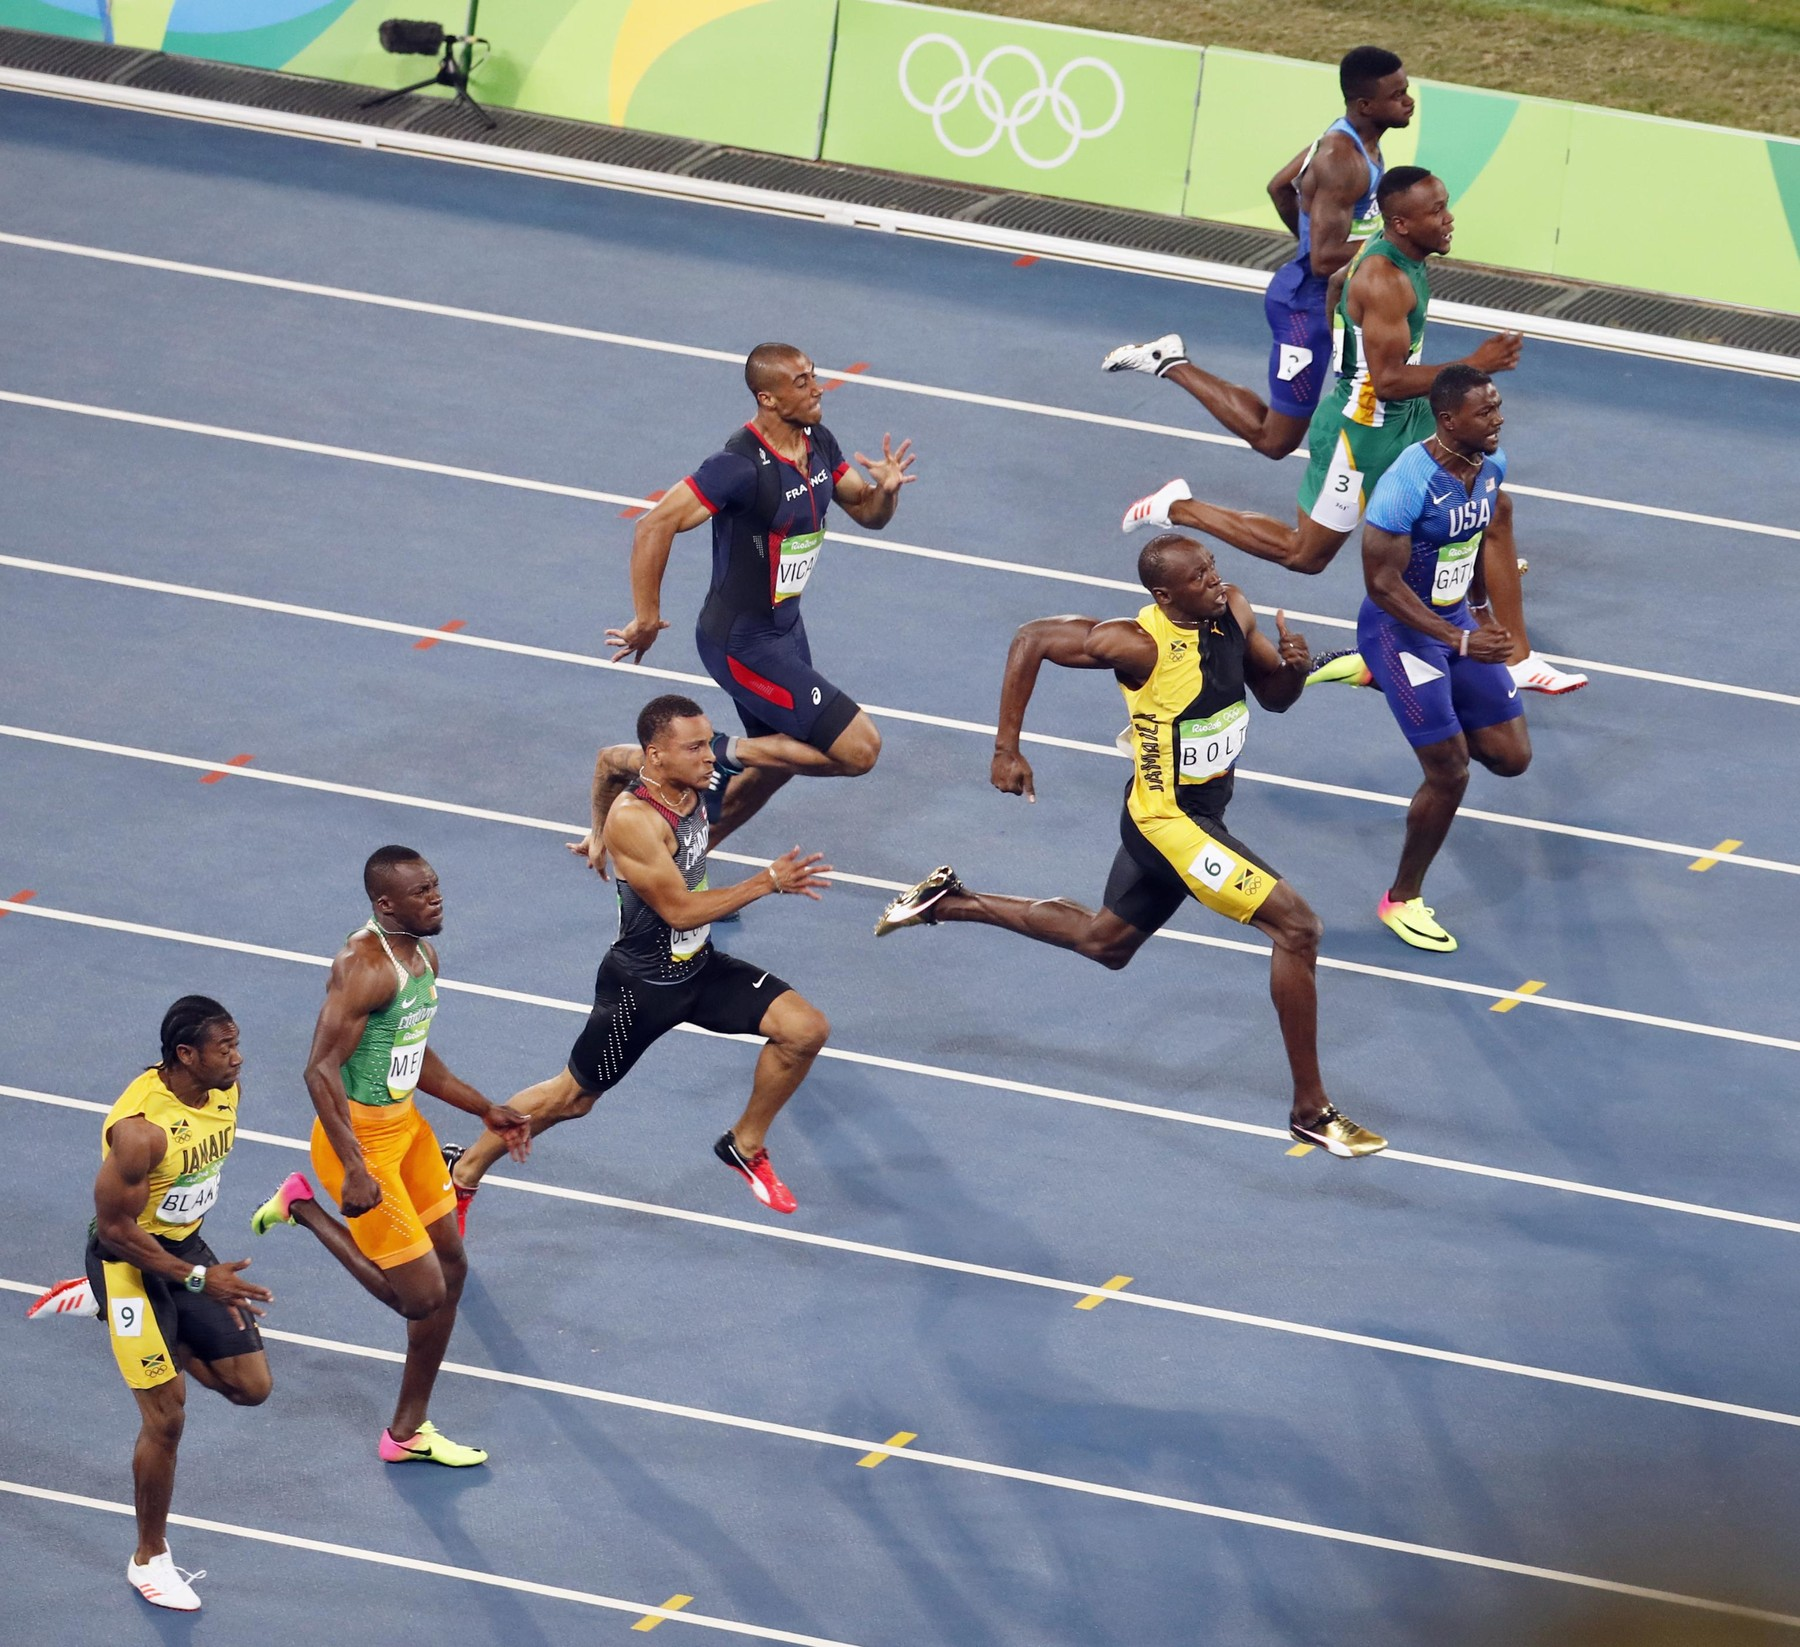 Olympics: Bolt completes unprecedented 100m three-peat